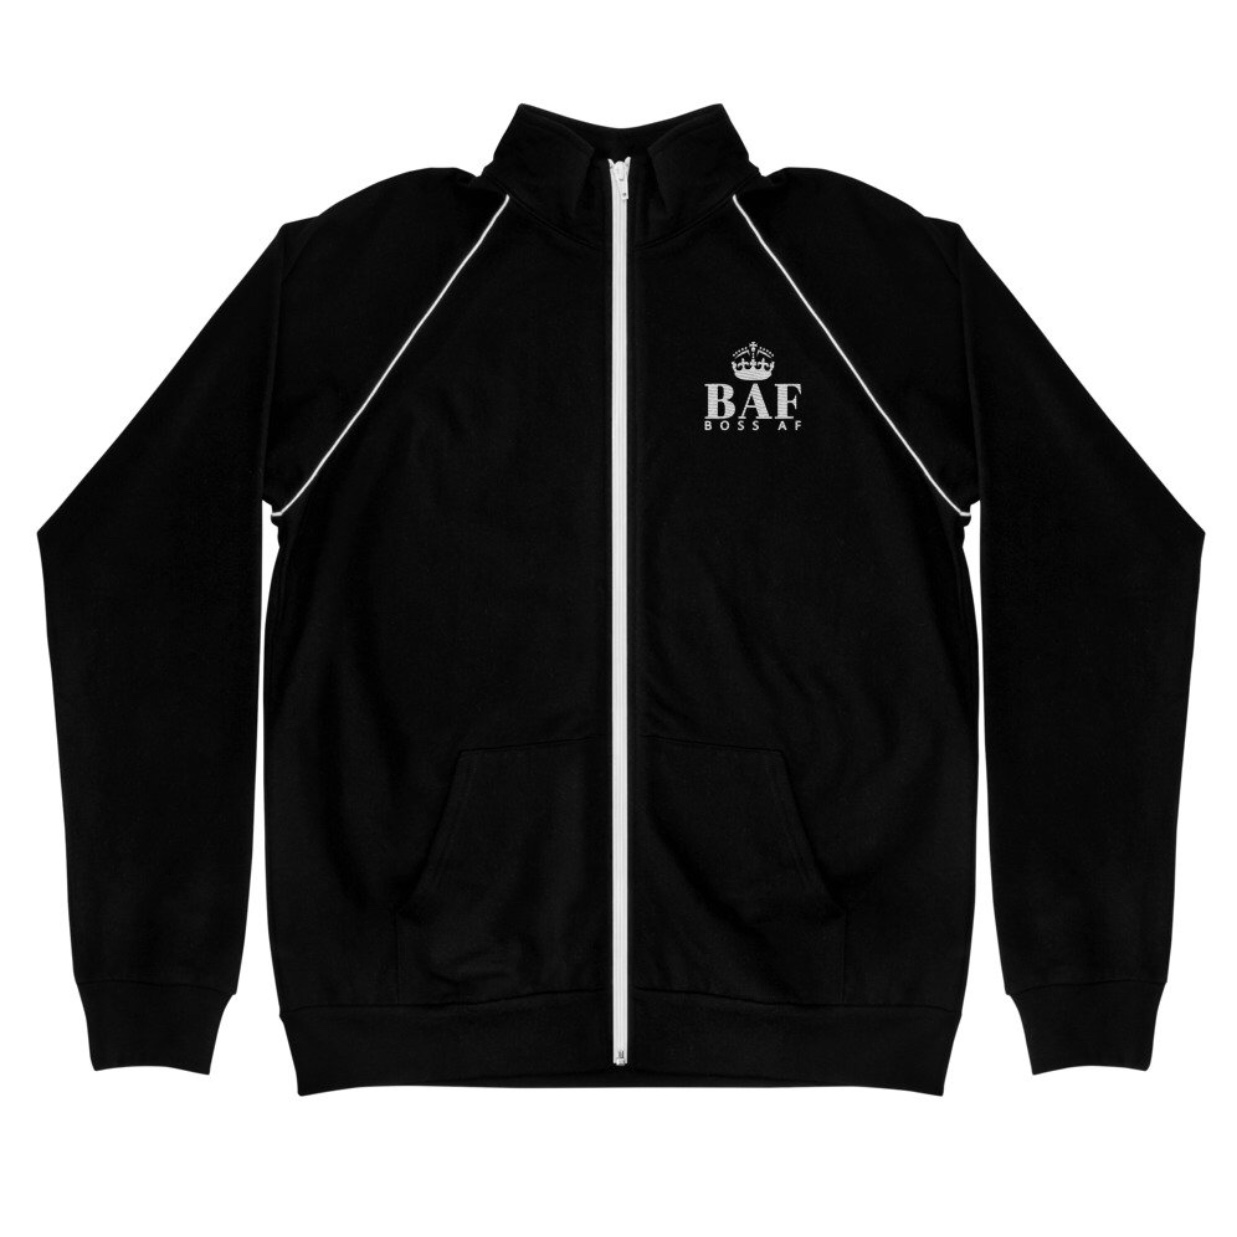 BOSS AF FLEECE JACKET - $48.00 - Protect yourself from the elements and make a BOFF AF fashion statement with this piped fleece jacket. It's pre-shrunk to last a long time and will easily become a favorite in your wardrobe.